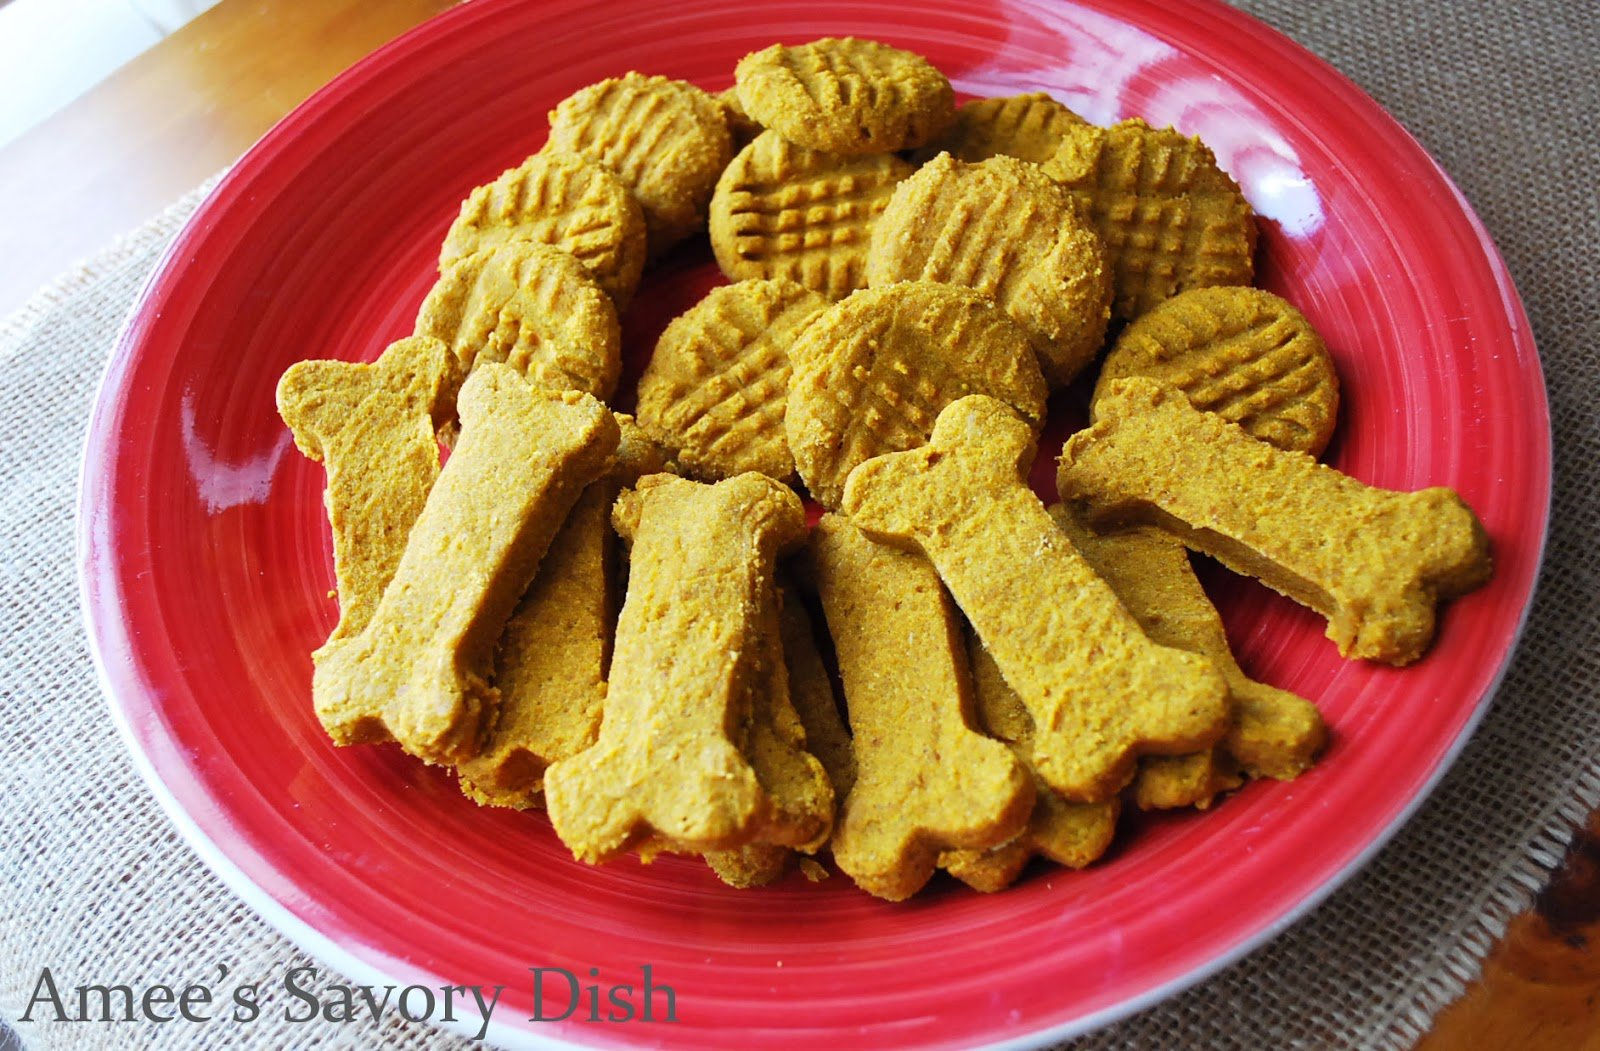 Healthy homemade dog treats are easy to make and more nutritious than the store bought dog treats. This dog biscuits recipe uses real food ingredients!